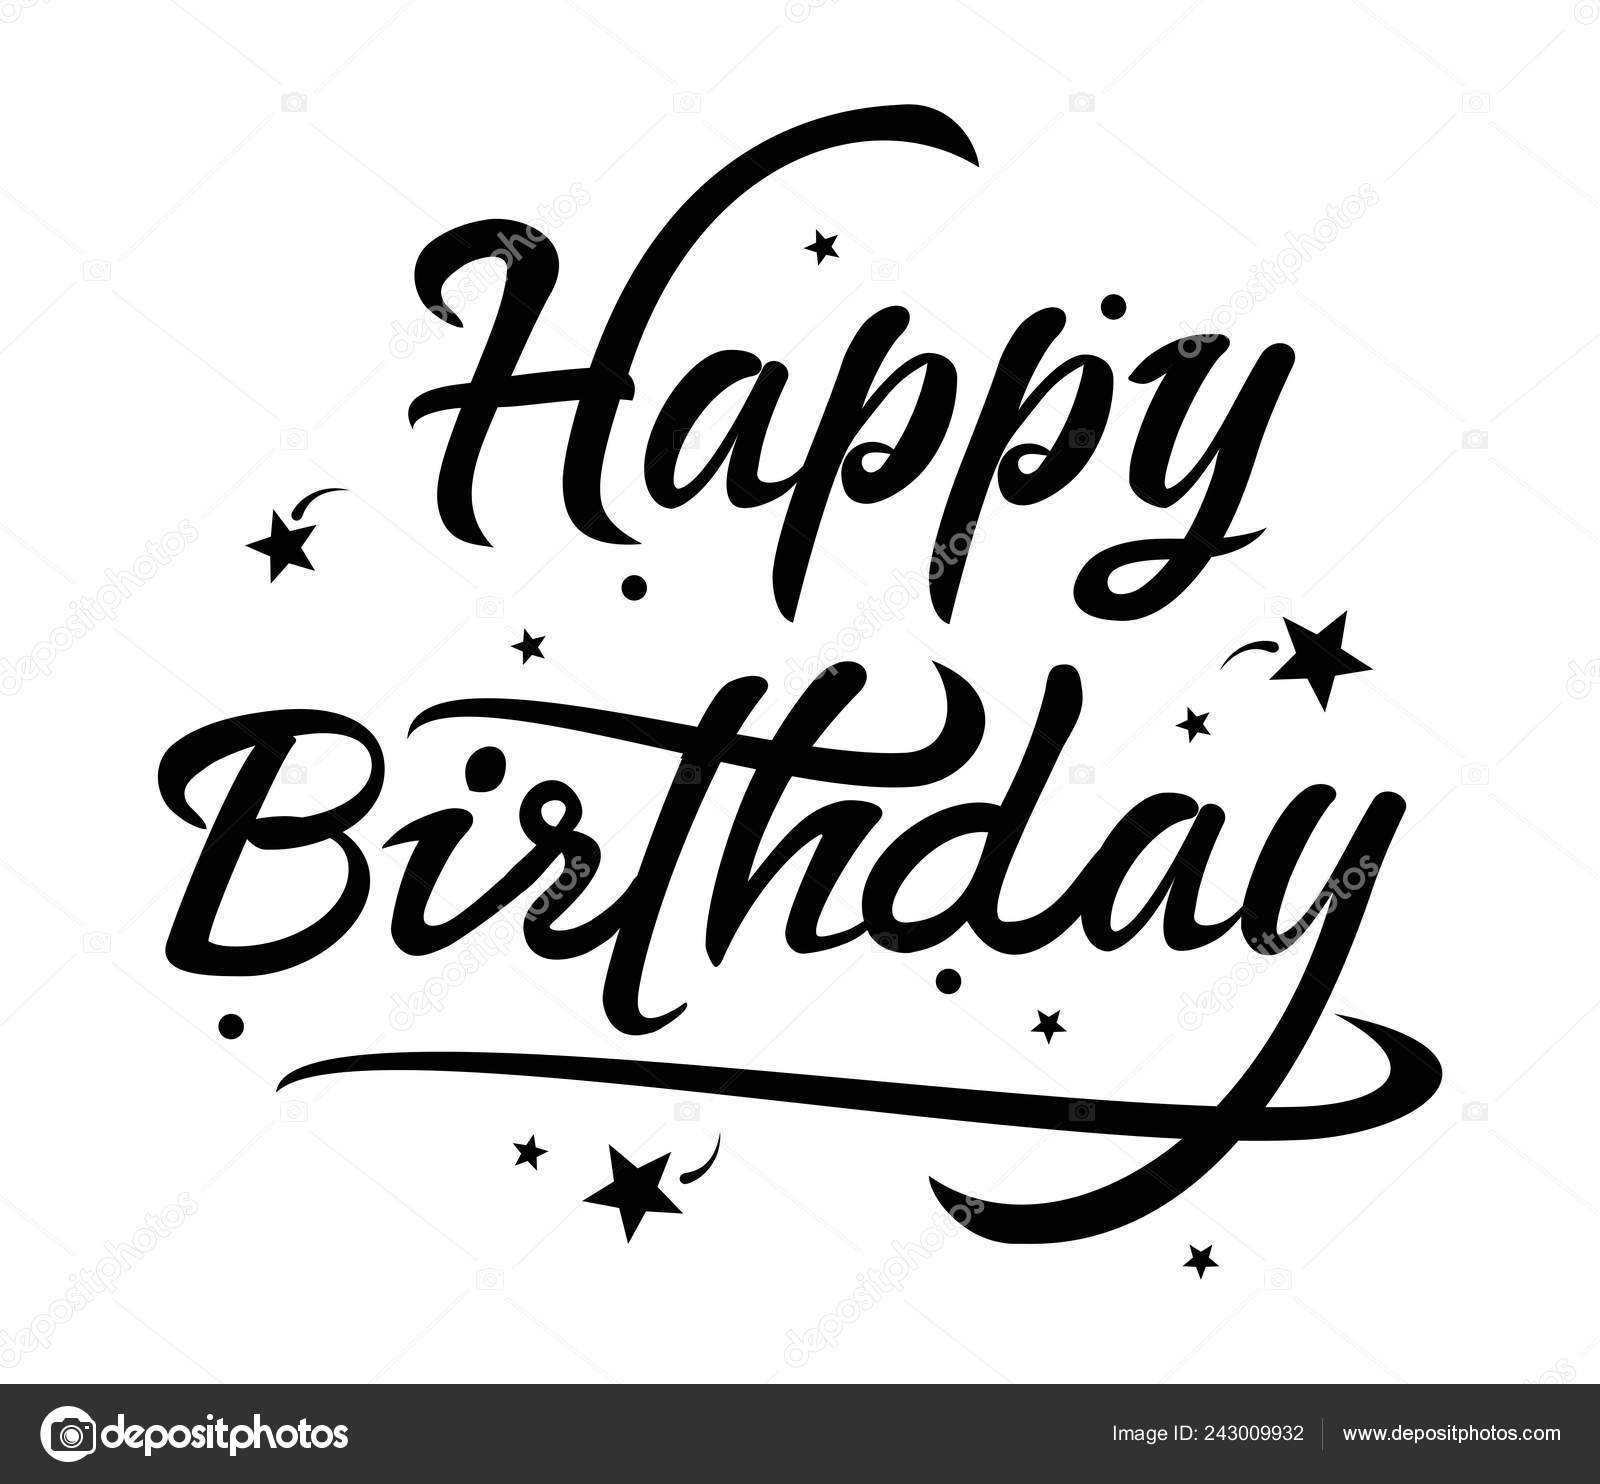 Vector black and white happy birthday text. greeting card lettering design.  birthday background illustration typography. wishing happy birthday